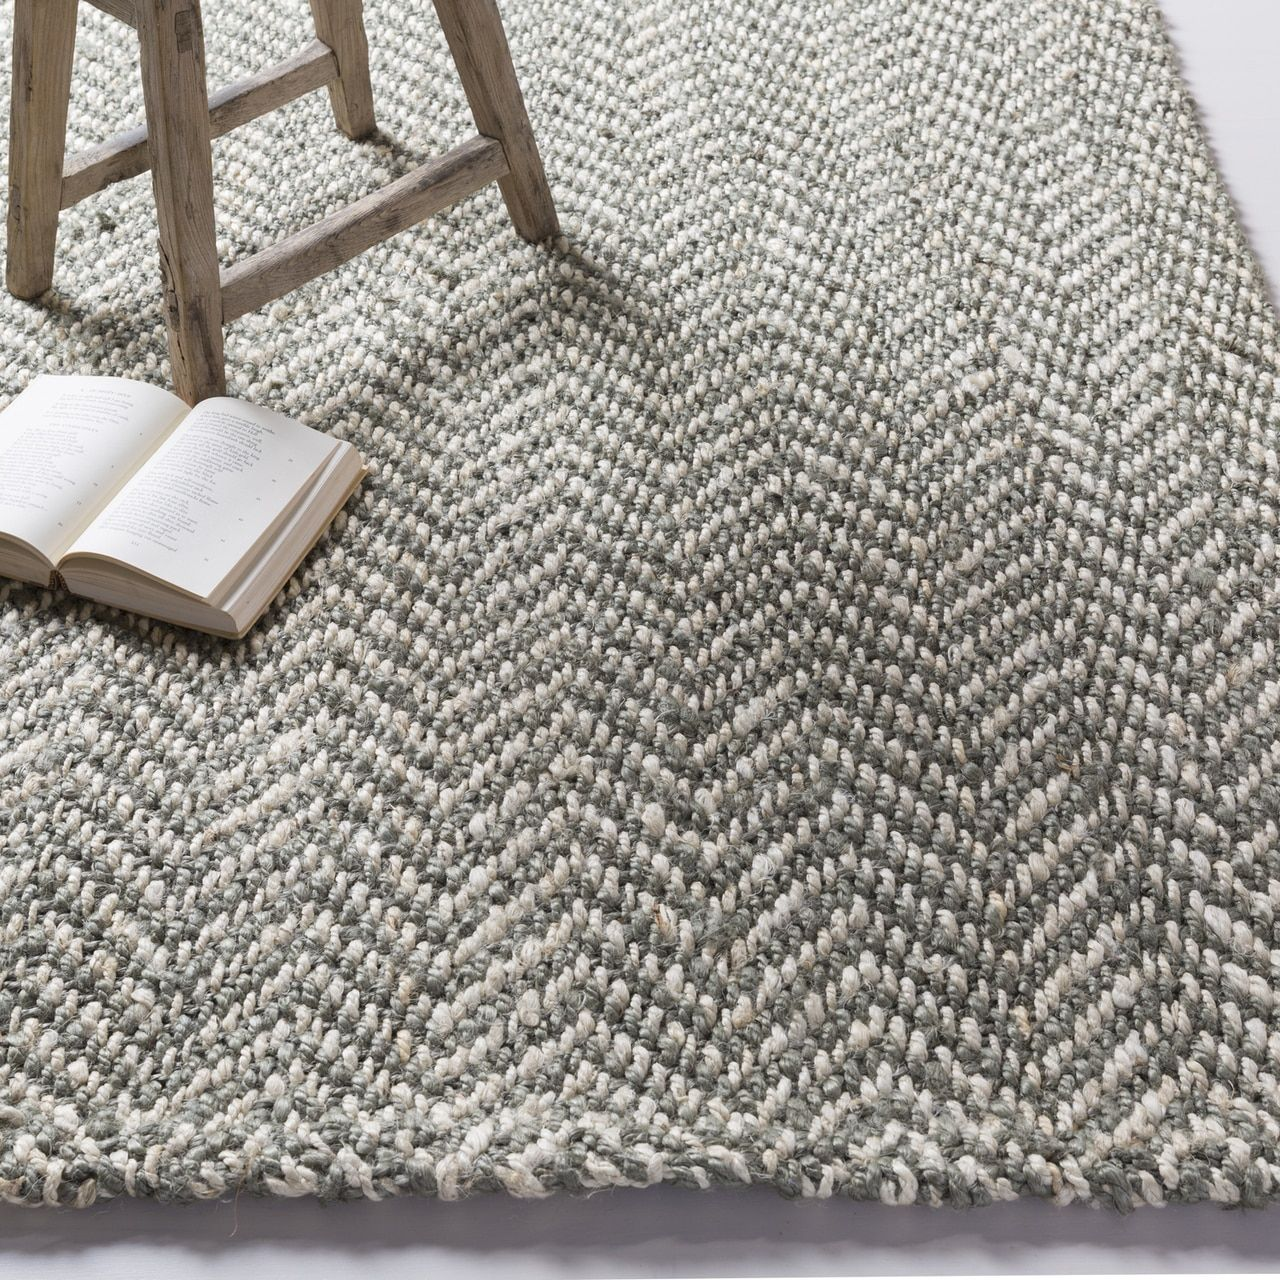 Unique Herringbone Pattern Is Created With This All